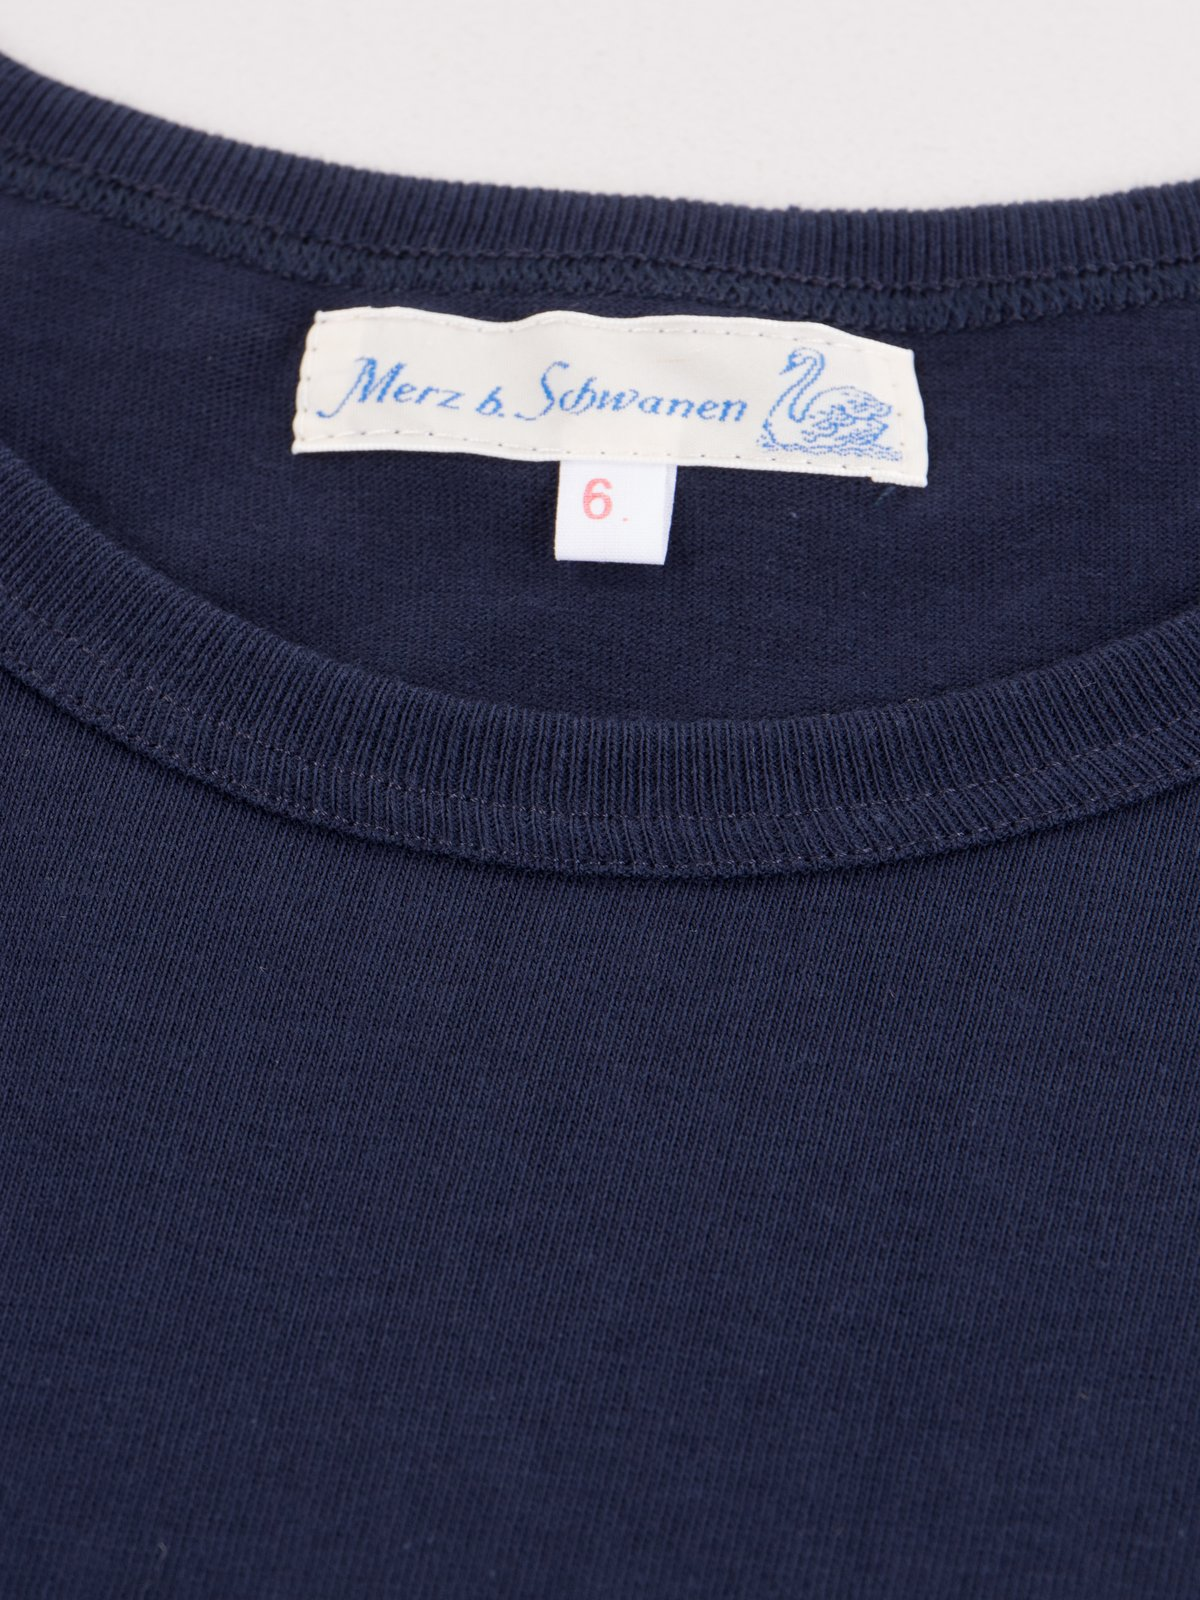 Ink Blue 215 Organic Cotton Army Shirt - Image 4